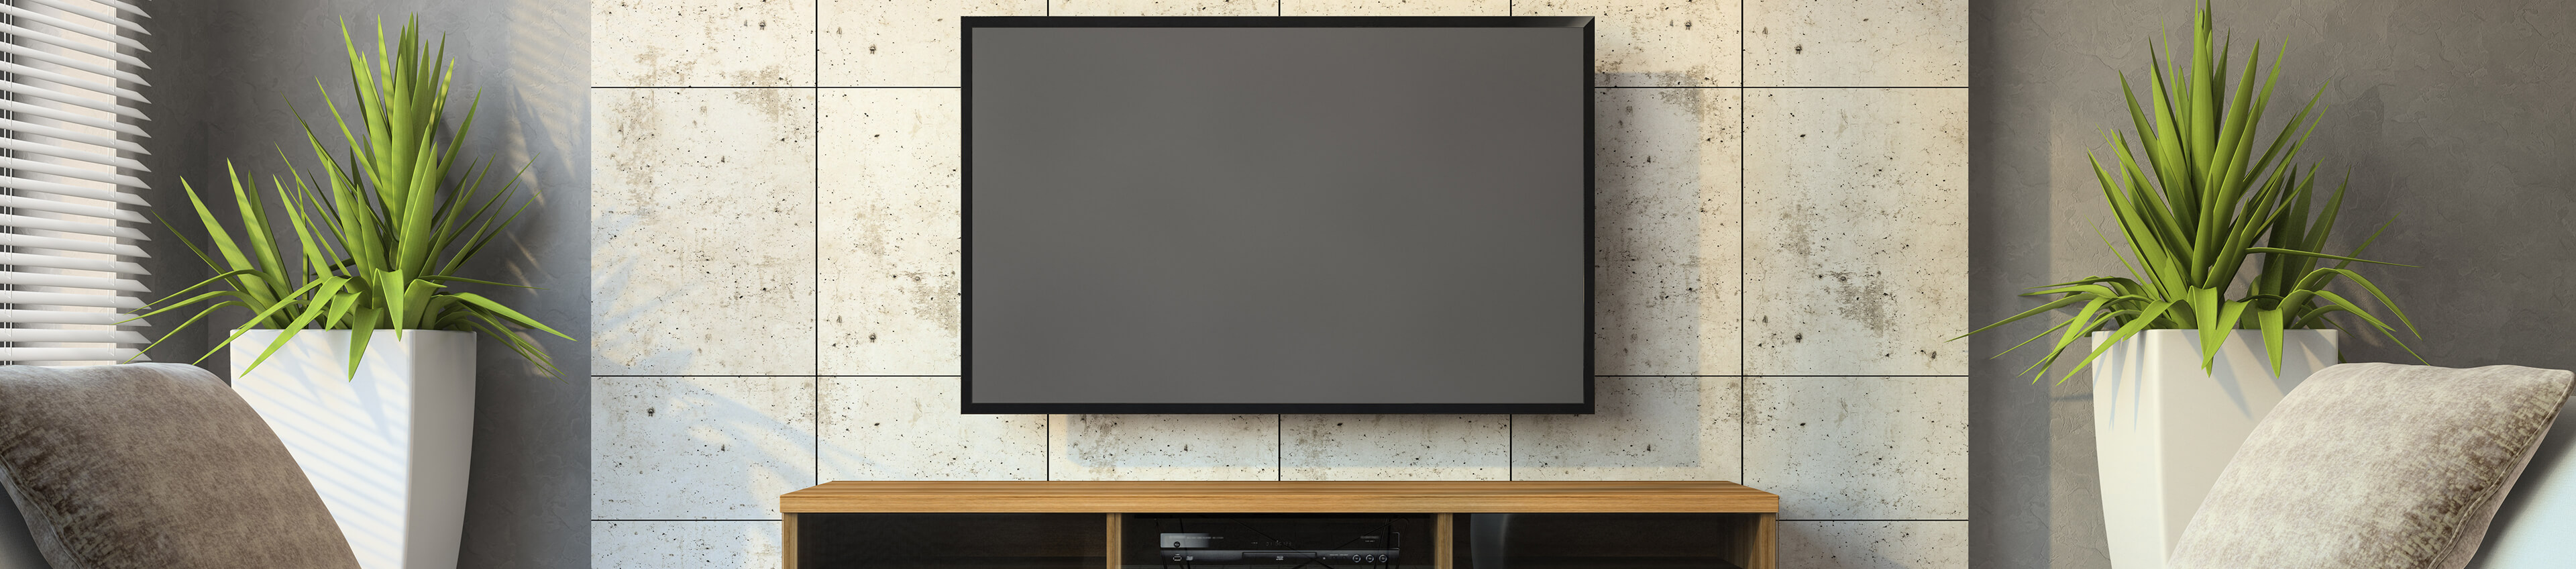 Black Friday OLED TV